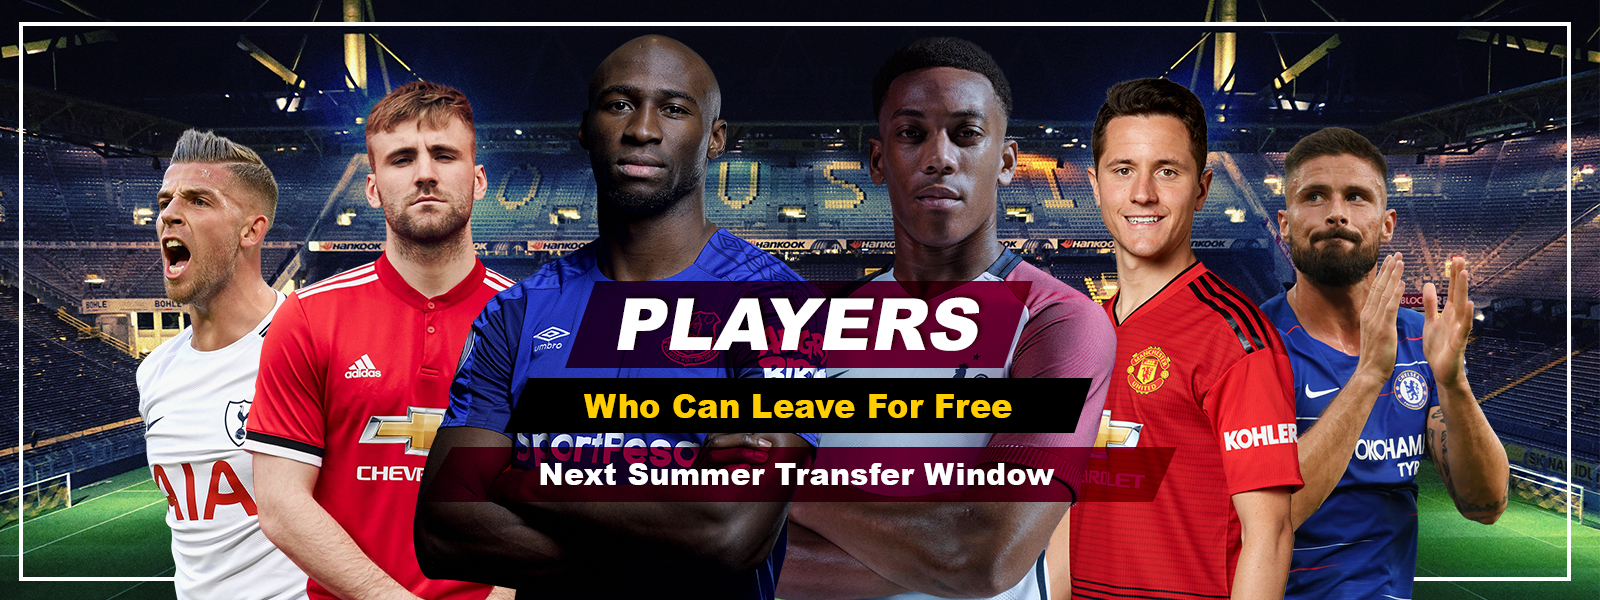 Players Who Can Leave For Free Next Summer Transfer Window